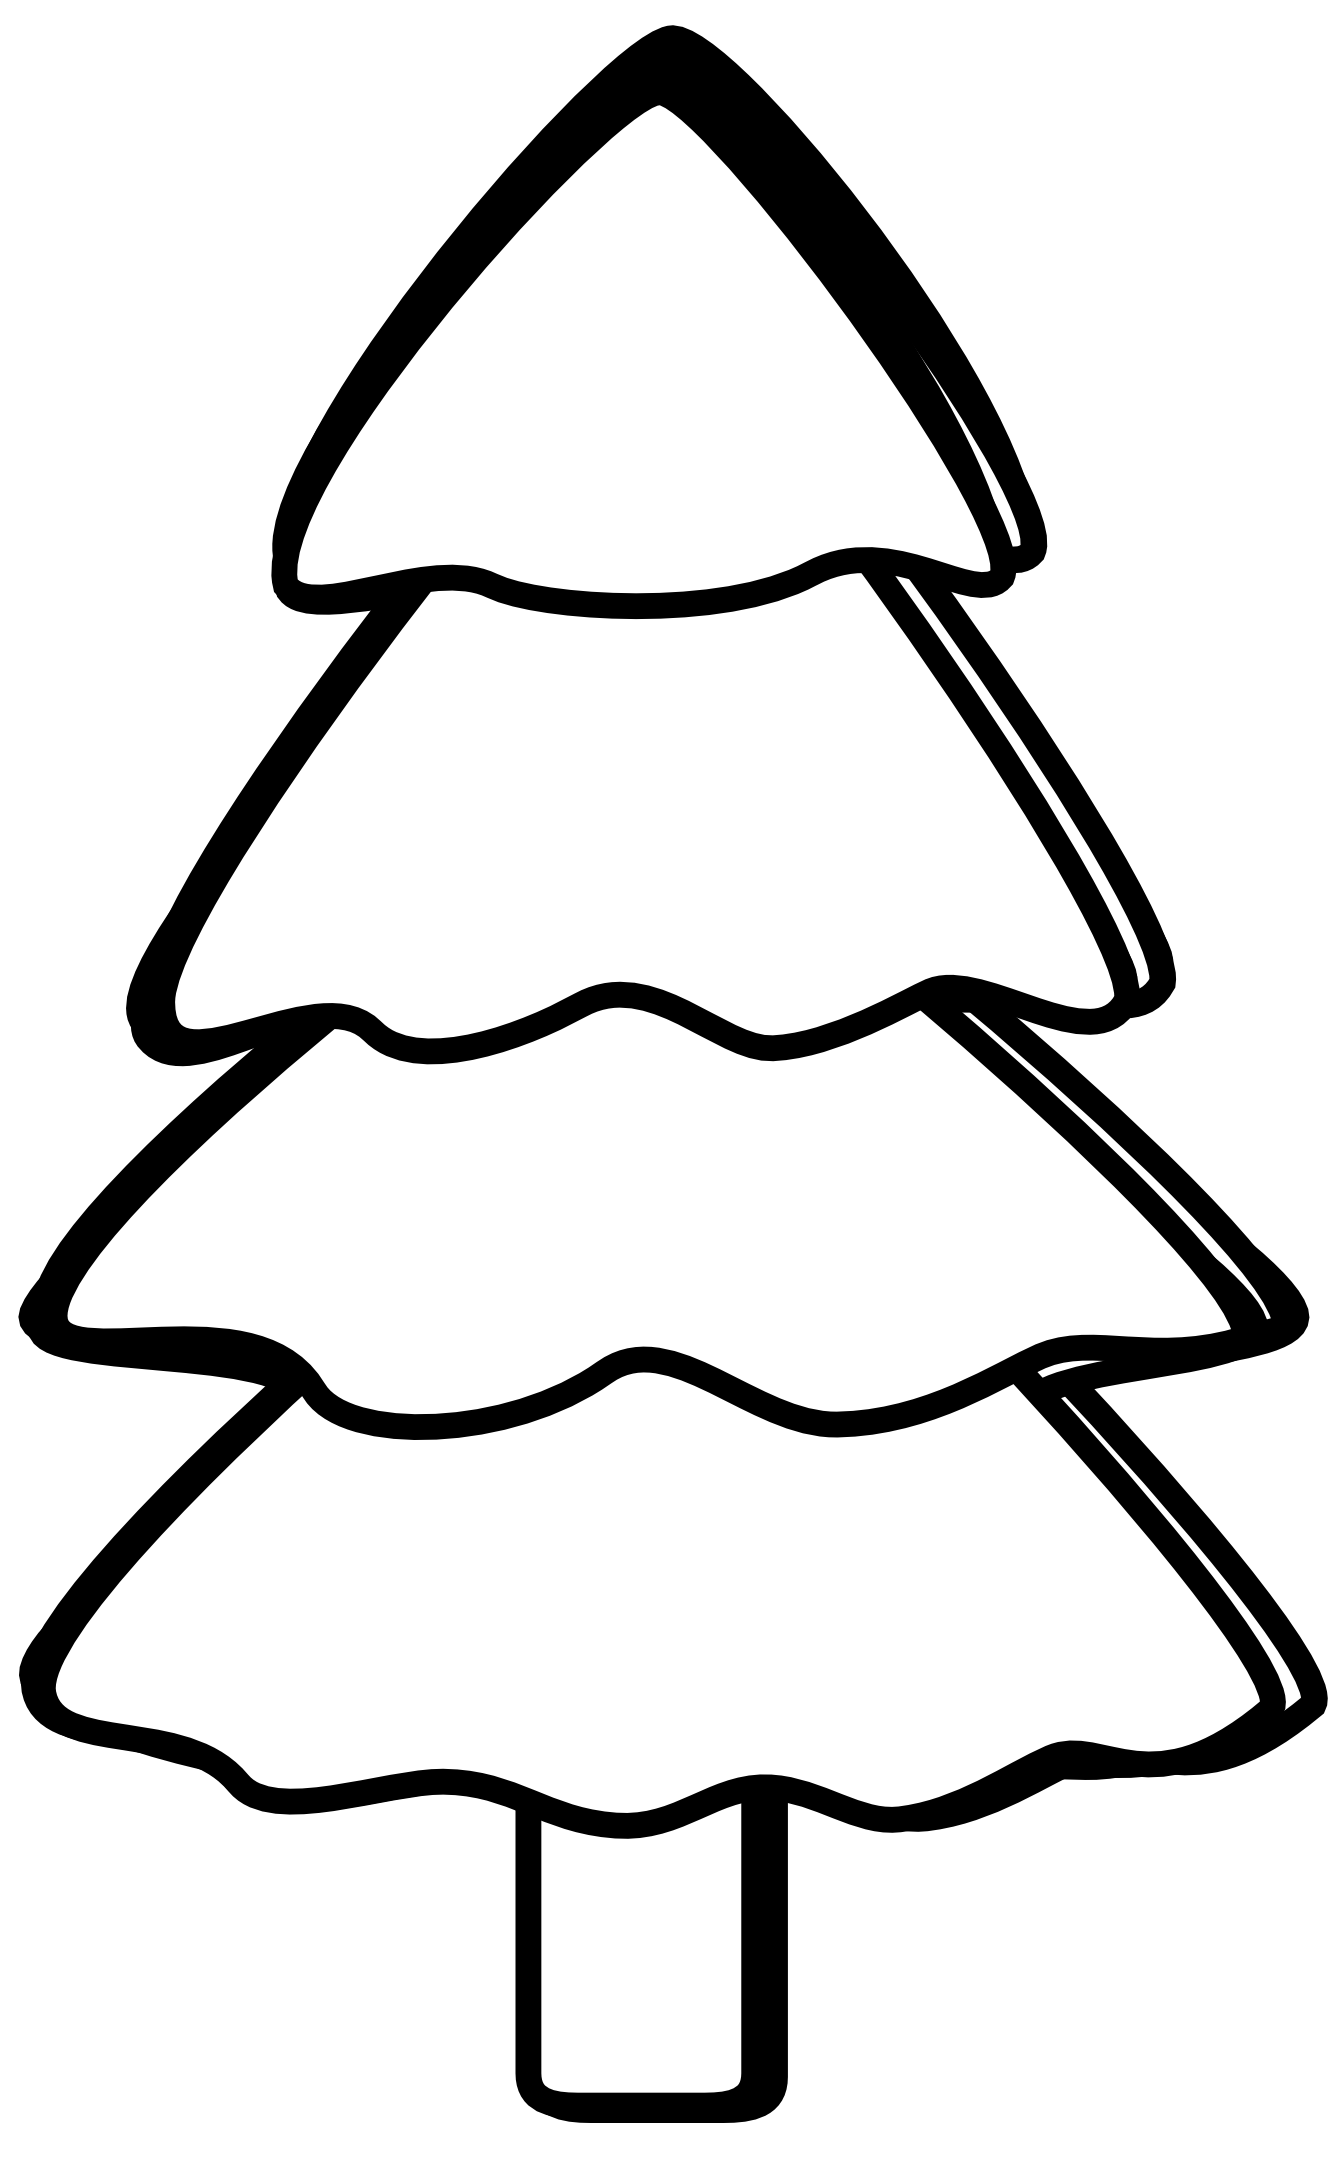 oak tree clipart black and white clipart panda free clipart images